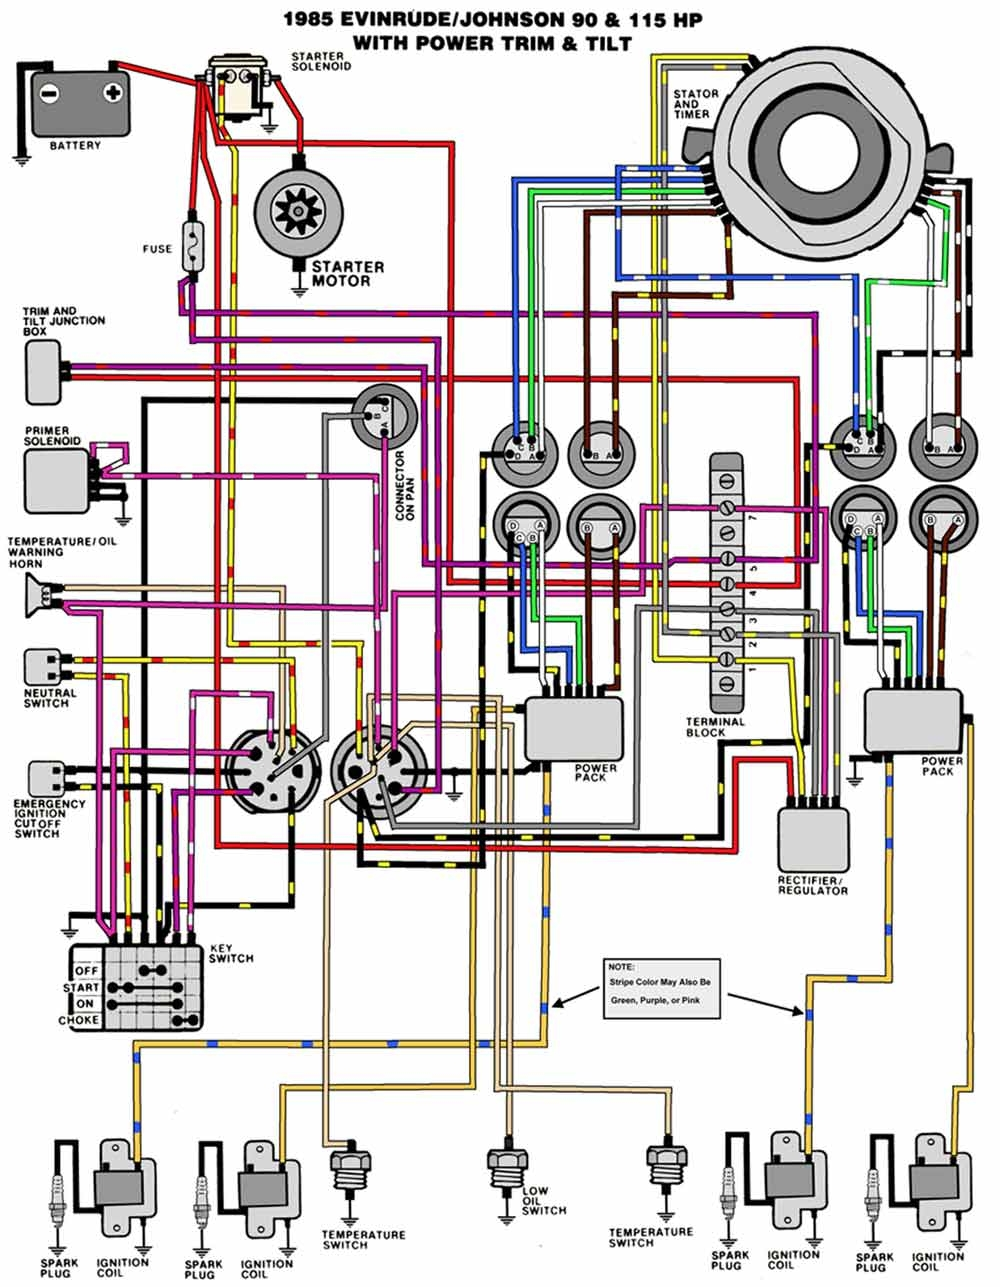 mercury outboard wiring diagram | free wiring diagram mercury outboard wiring harness diagram for 1976